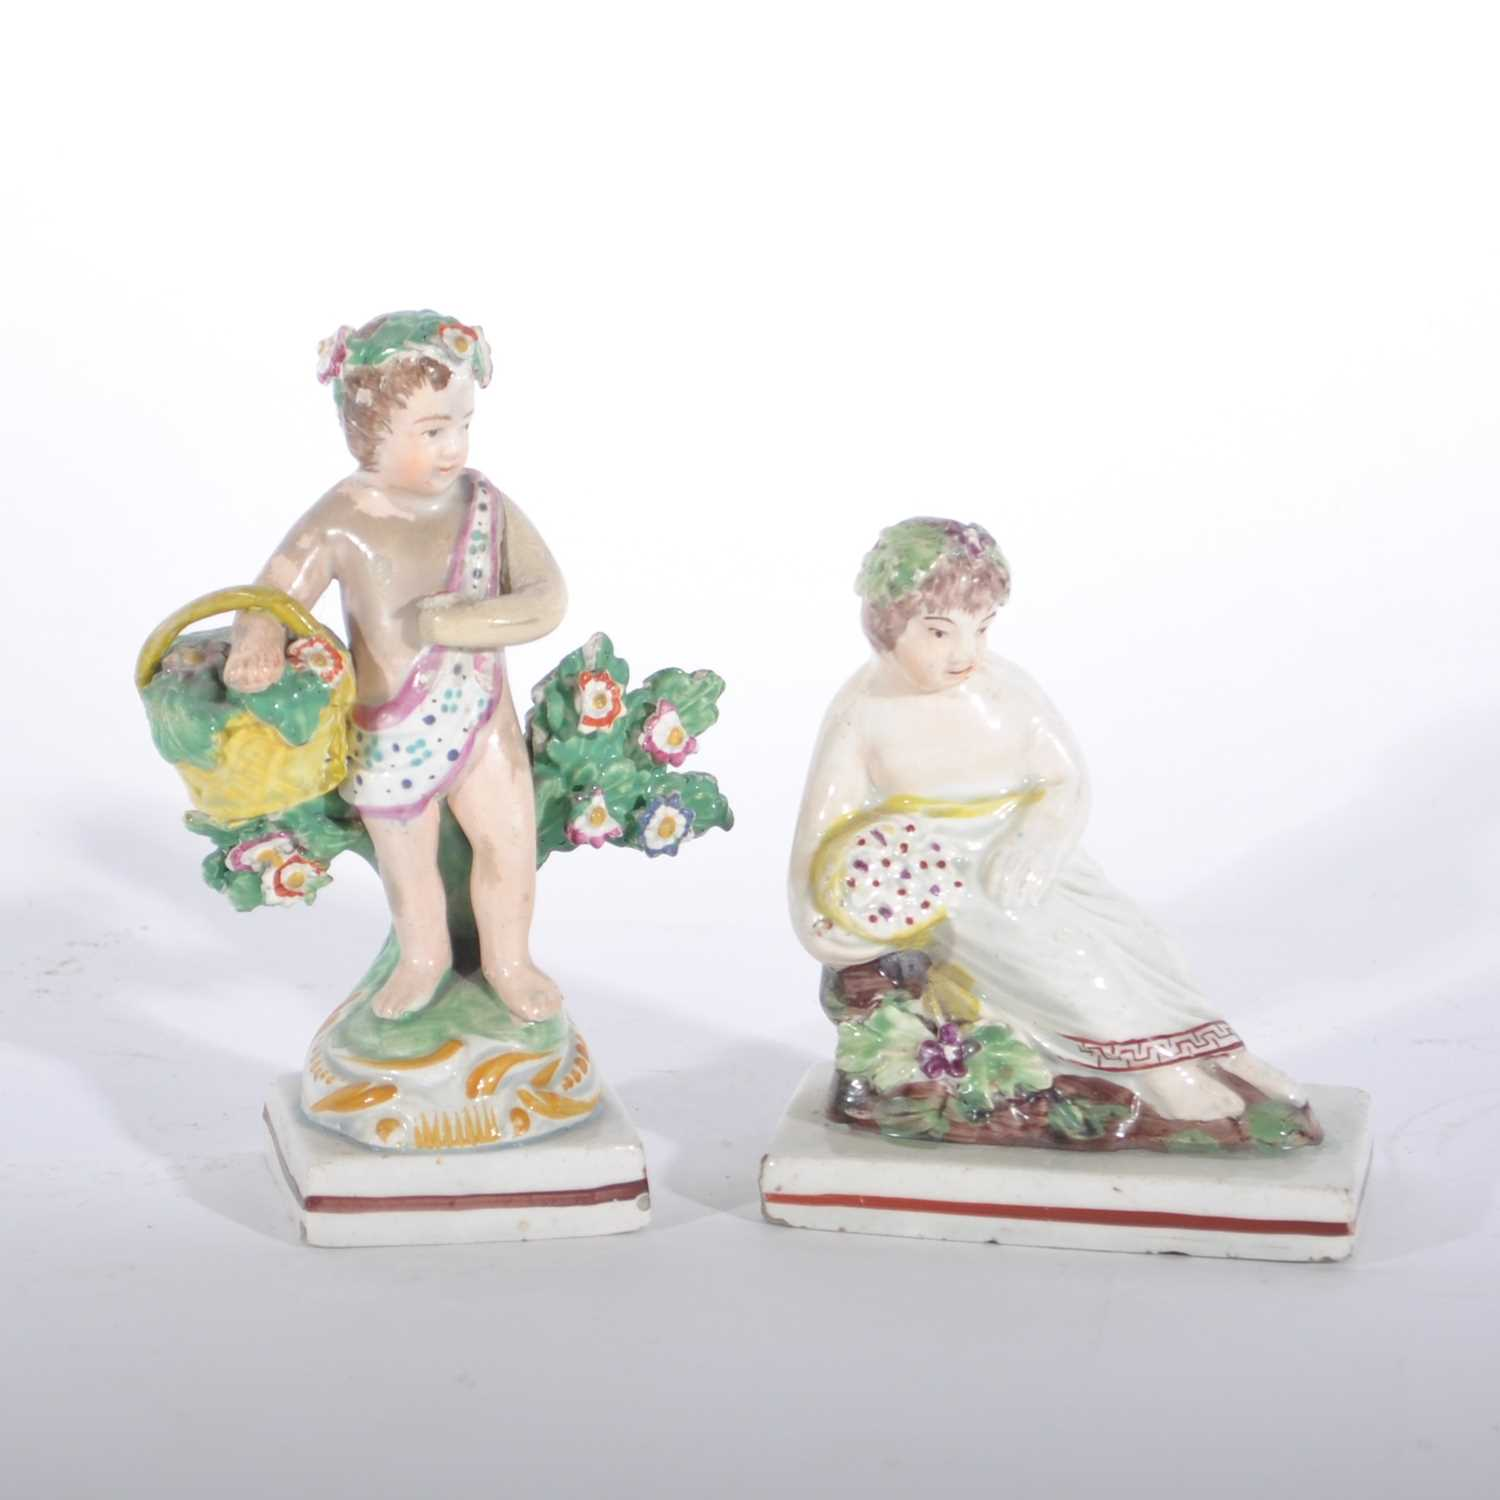 Lot 25-A Staffordshire bocage figure, and a Walton type figure